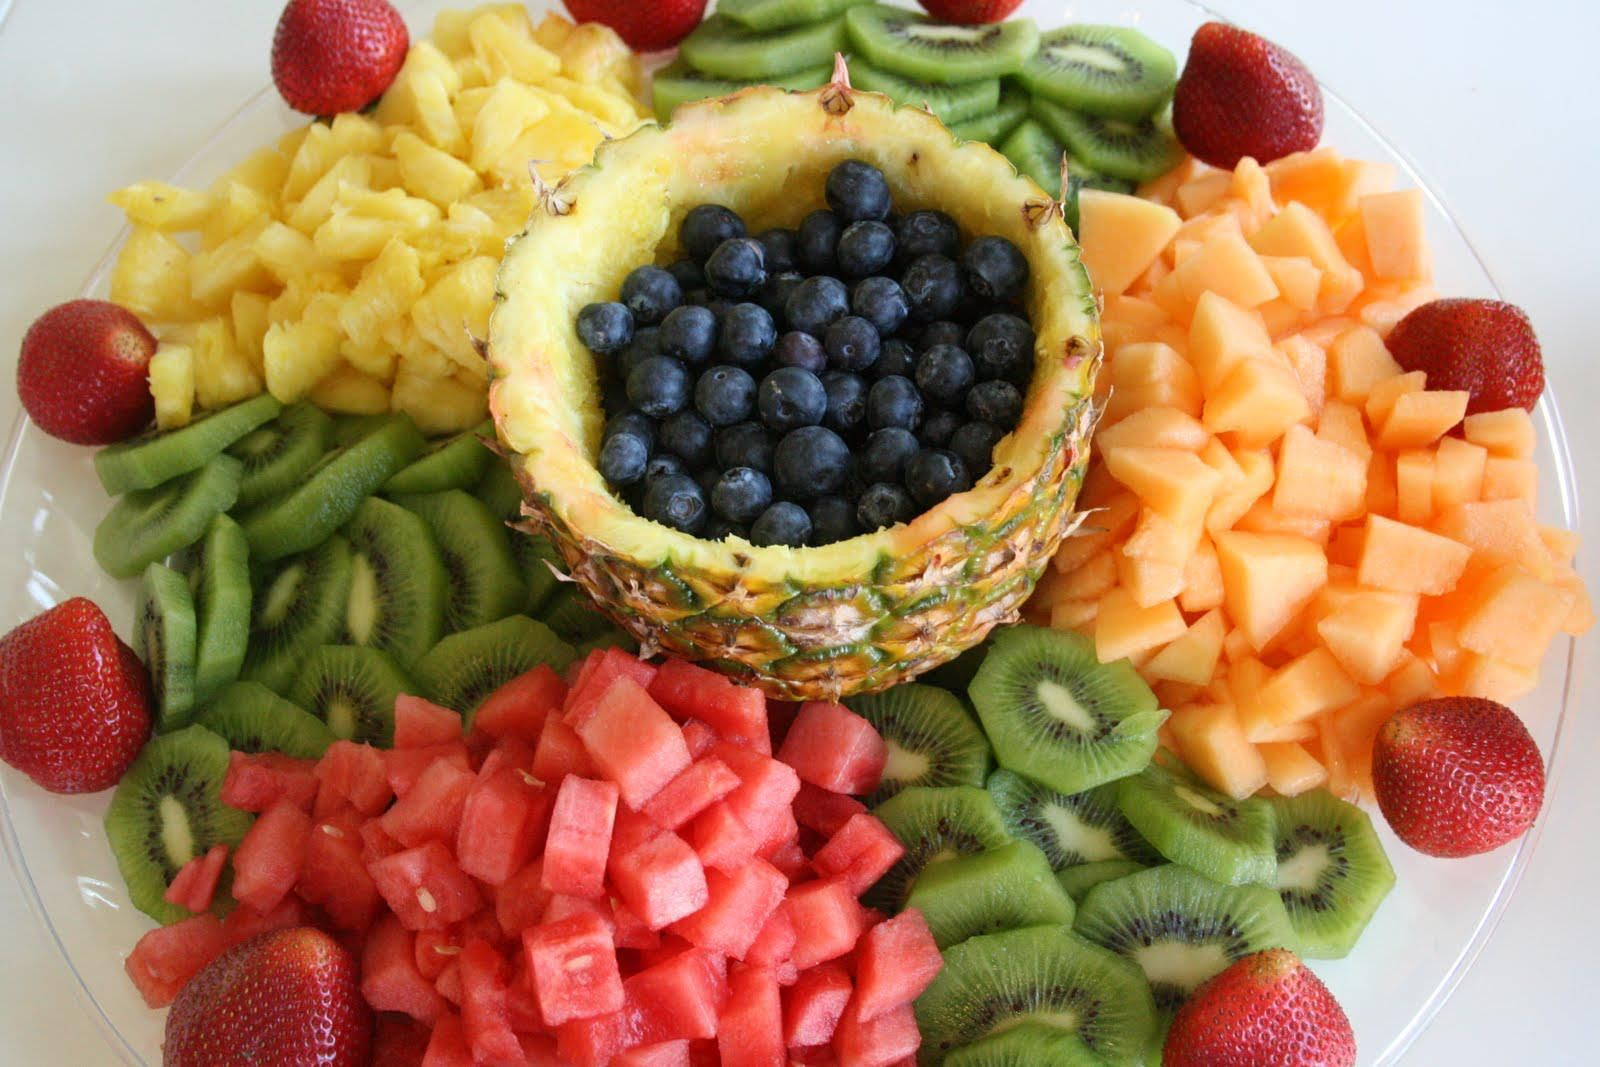 Ignore the fad diets --- sugar in fruit doesn't make it unhealthy